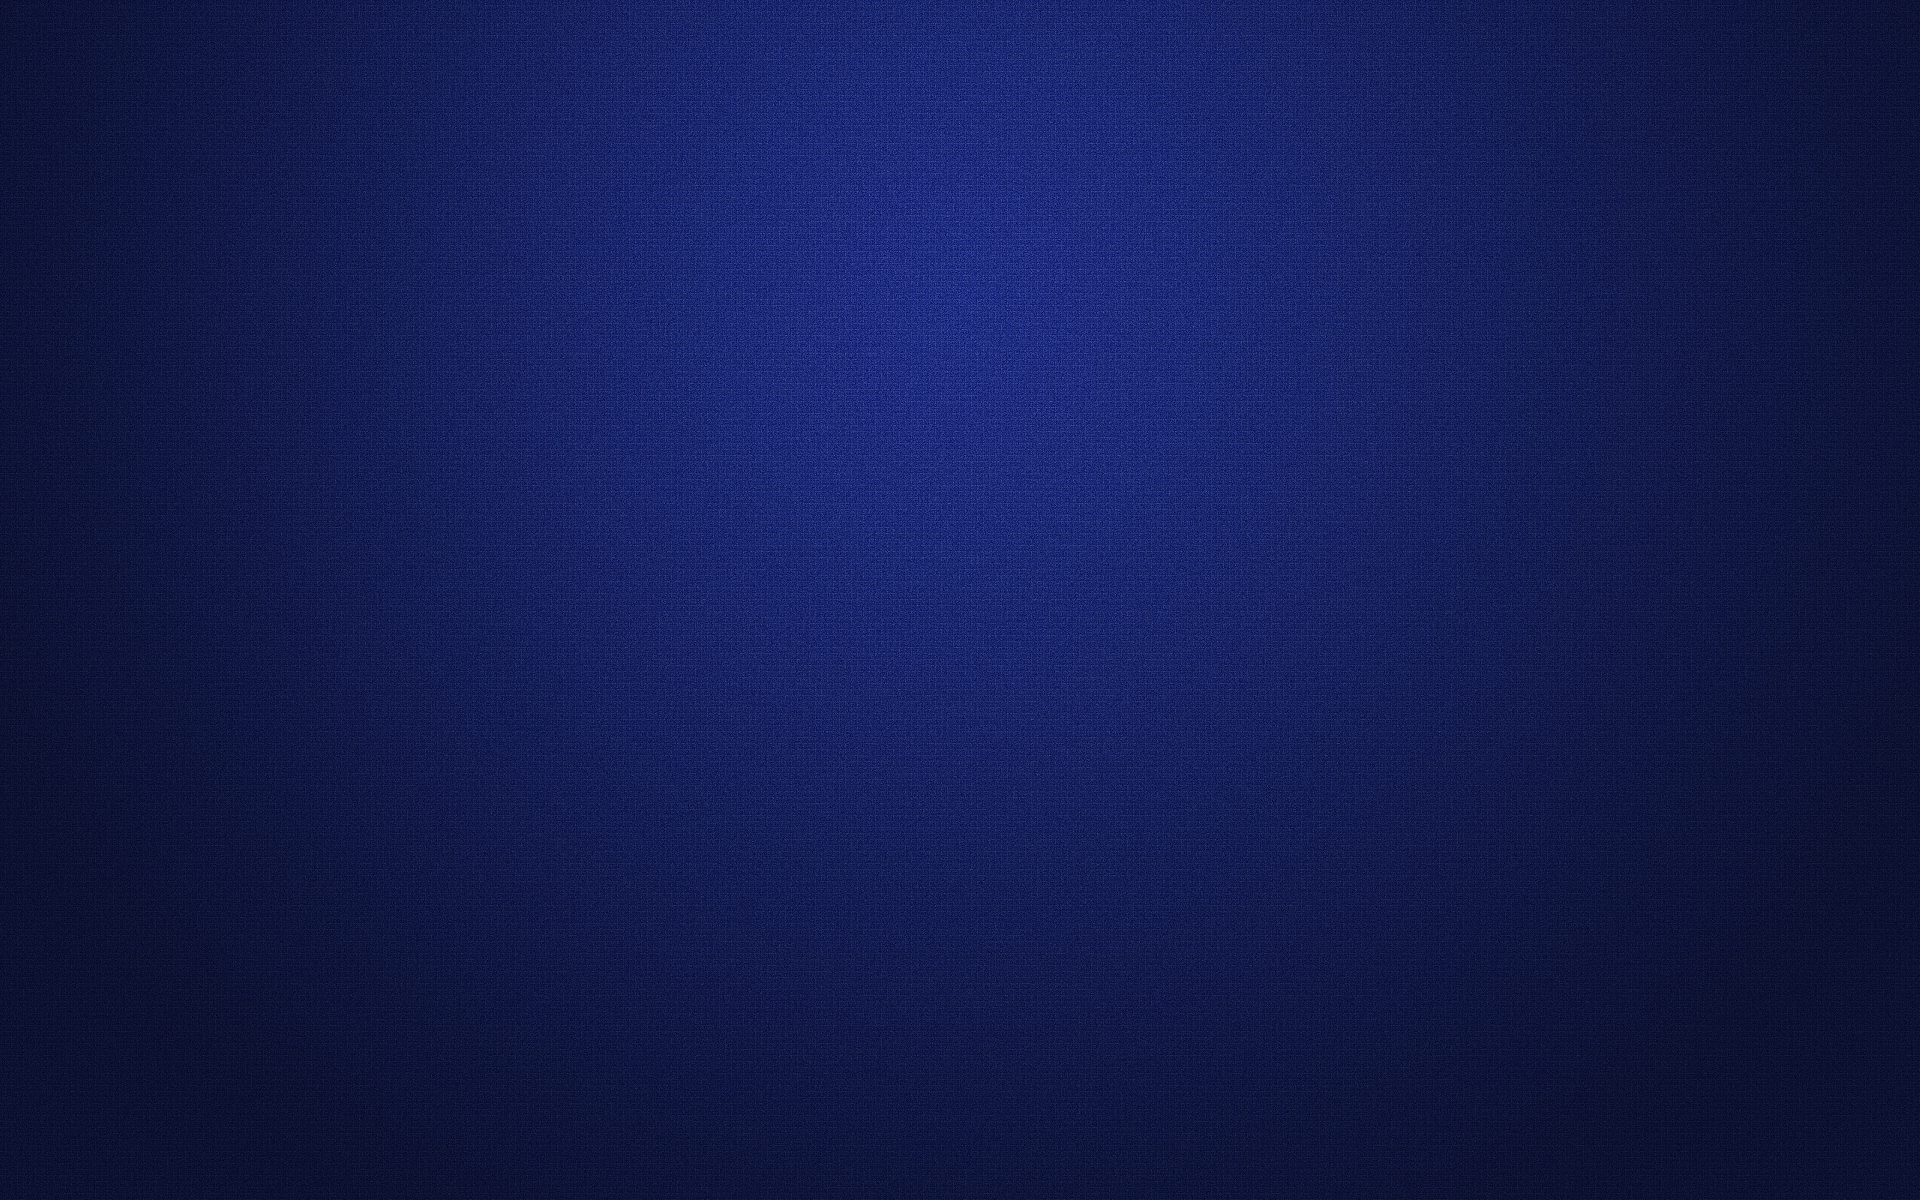 Plain dark wallpaper